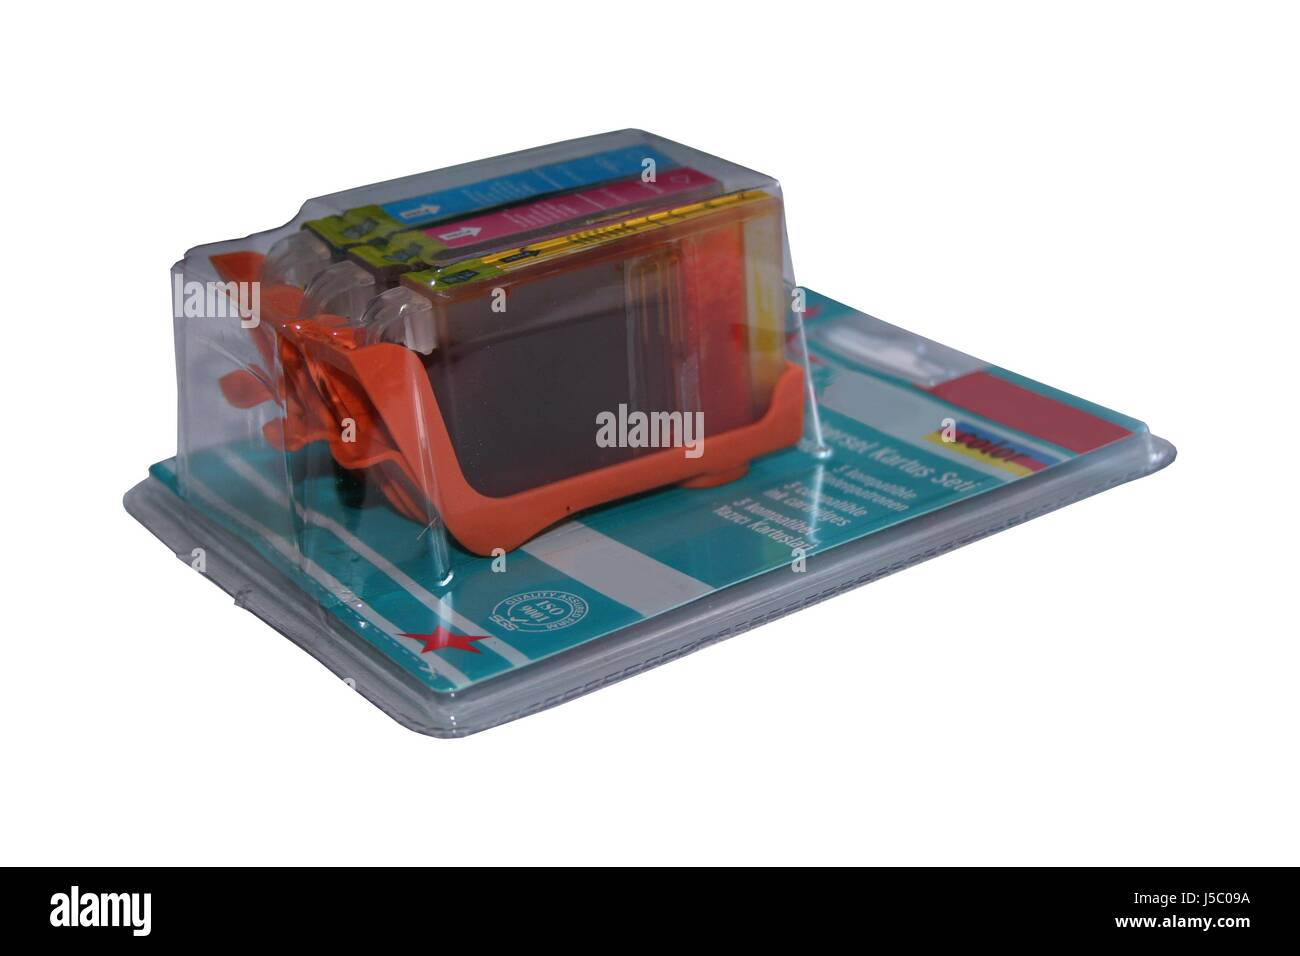 magenta cyan dyer staint pigment ink packing packaging 384 blisterverpackung - Stock Image